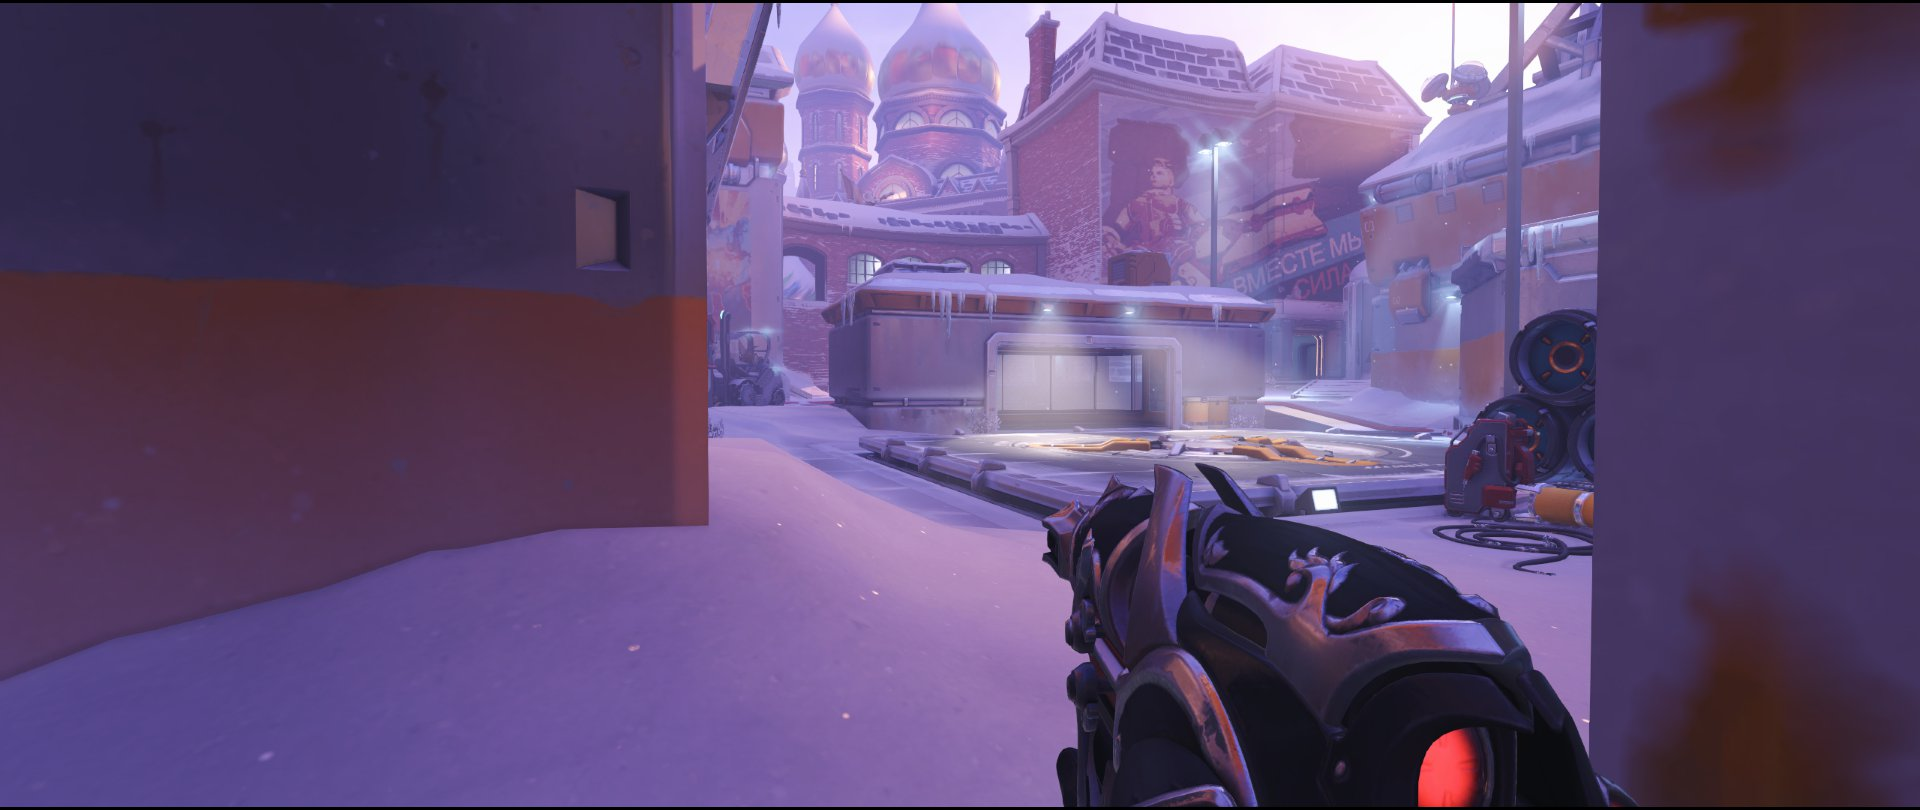 Left side dock defense sniping spot Widowmaker Volskaya Industries Overwatch.jpg